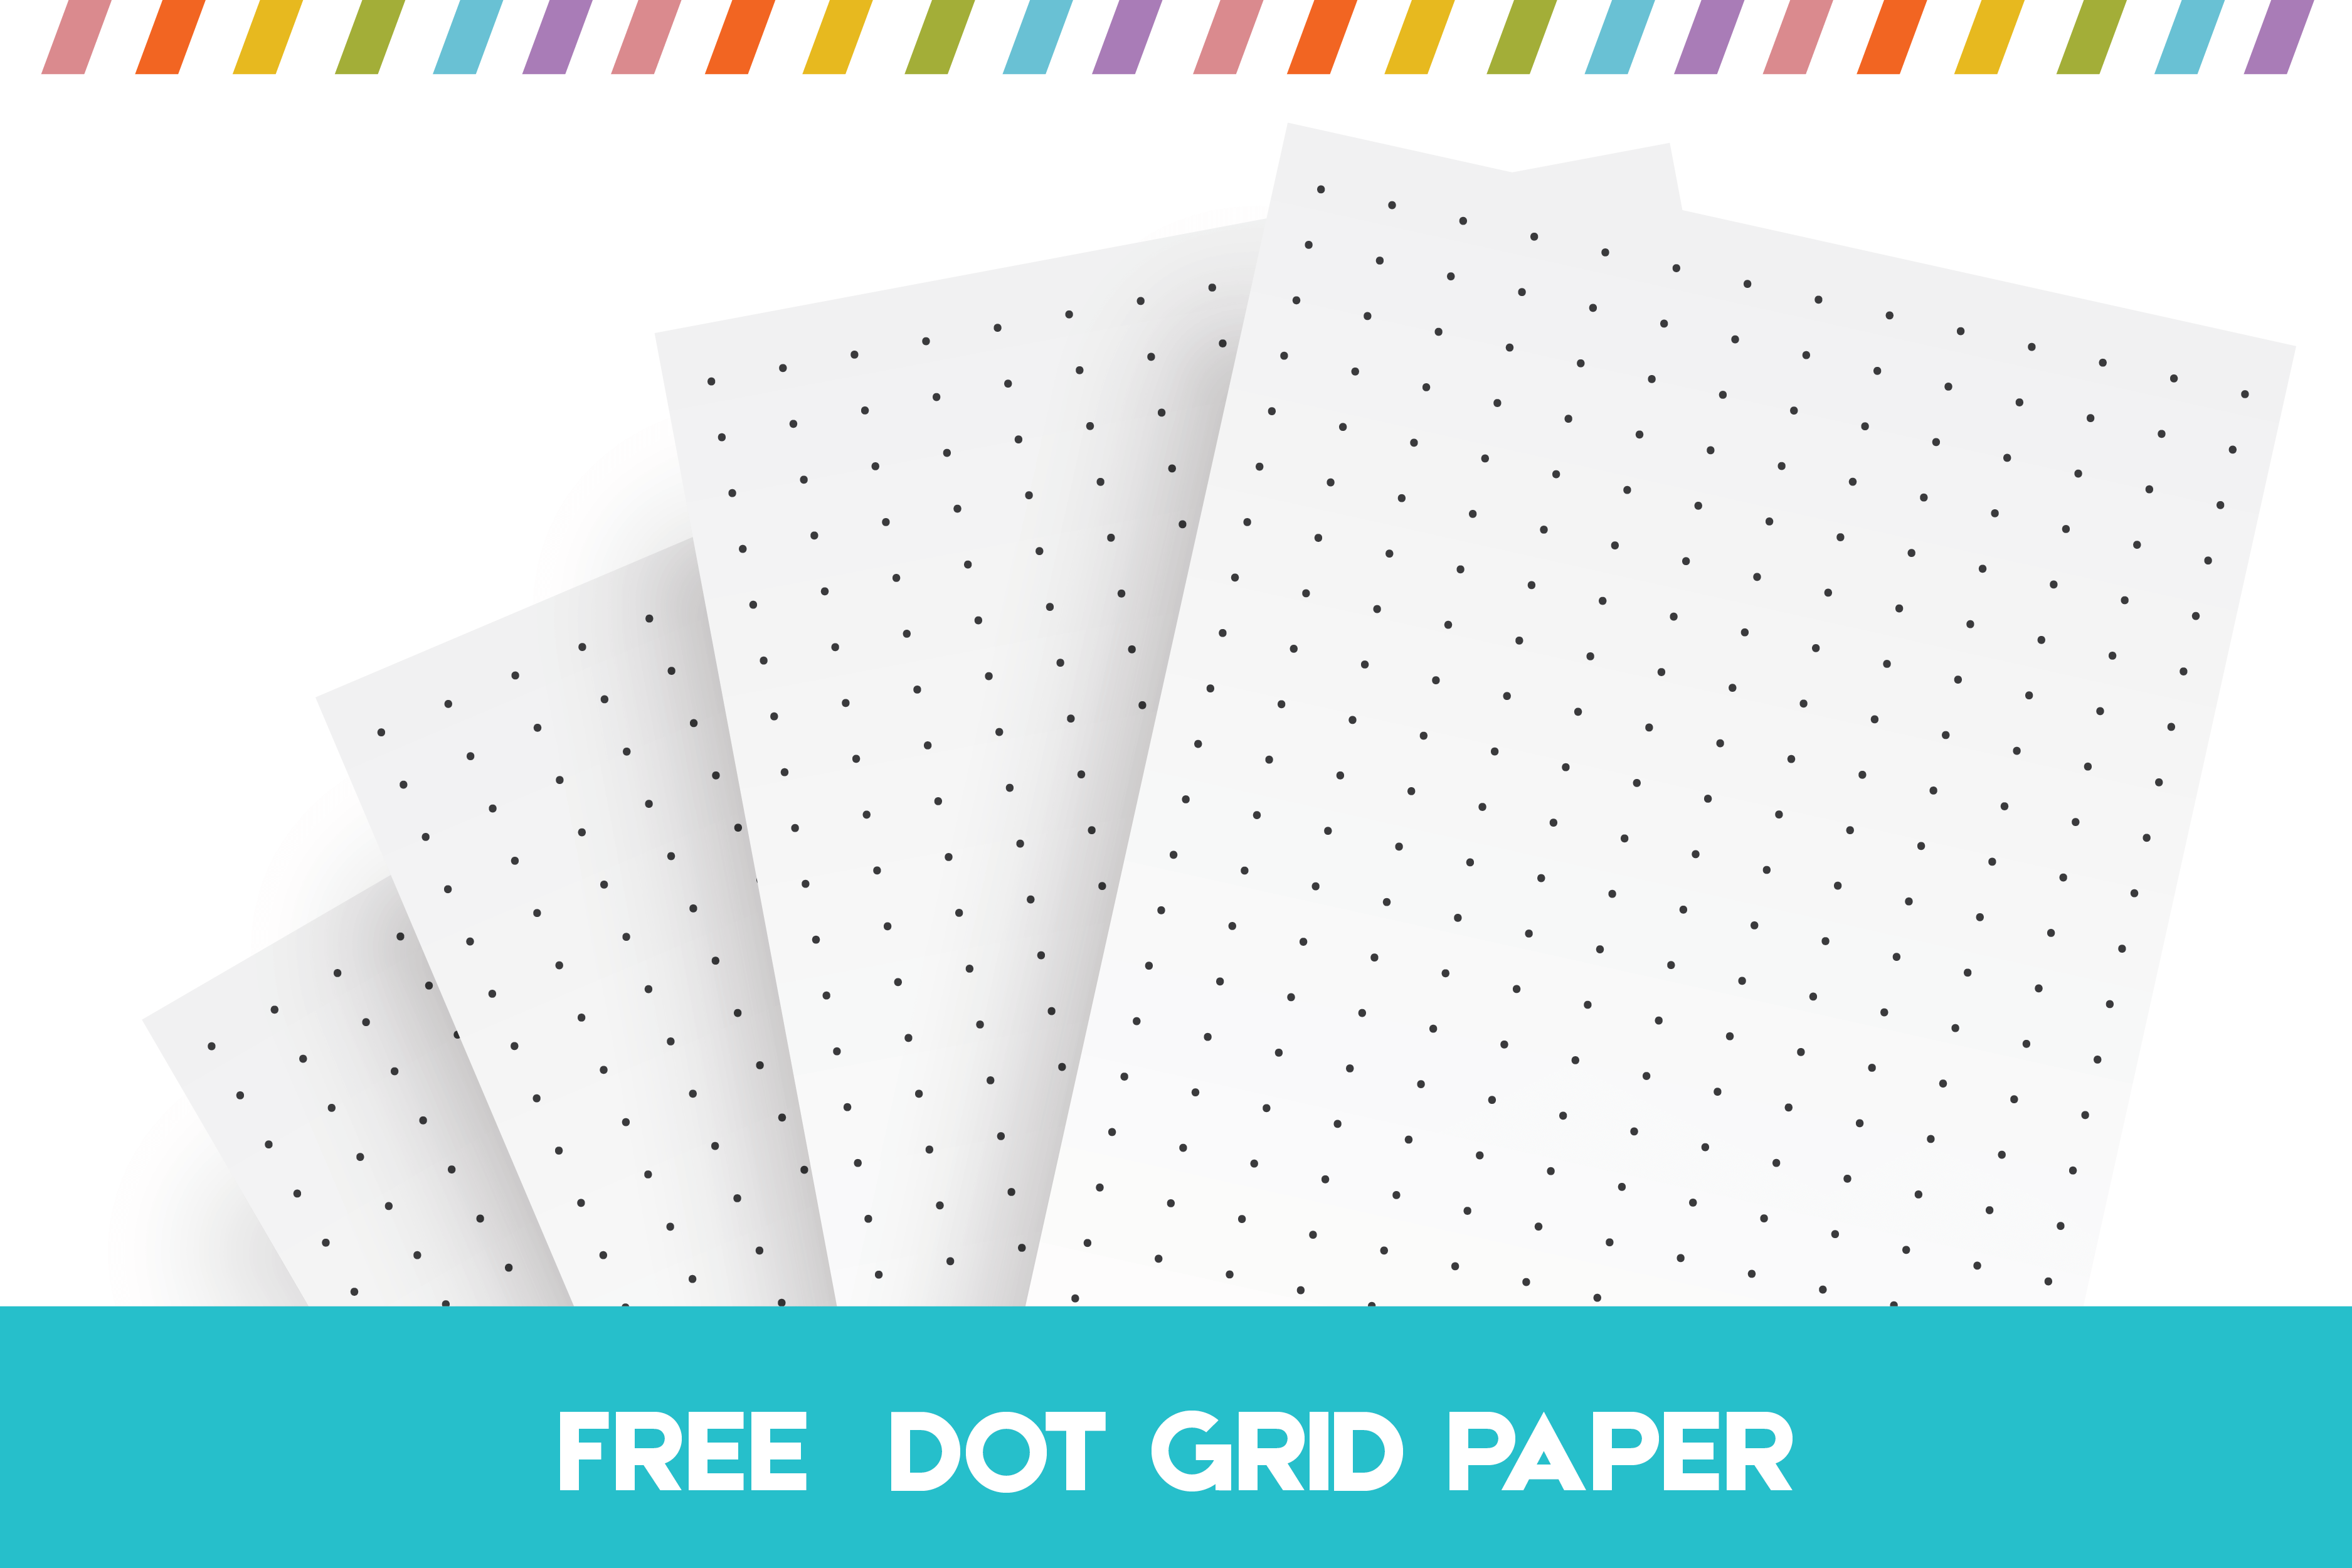 graphic about Free Printable Dot Grid Paper referred to as No cost Printable Dot Grid Paper For Bullet Magazines And Notes